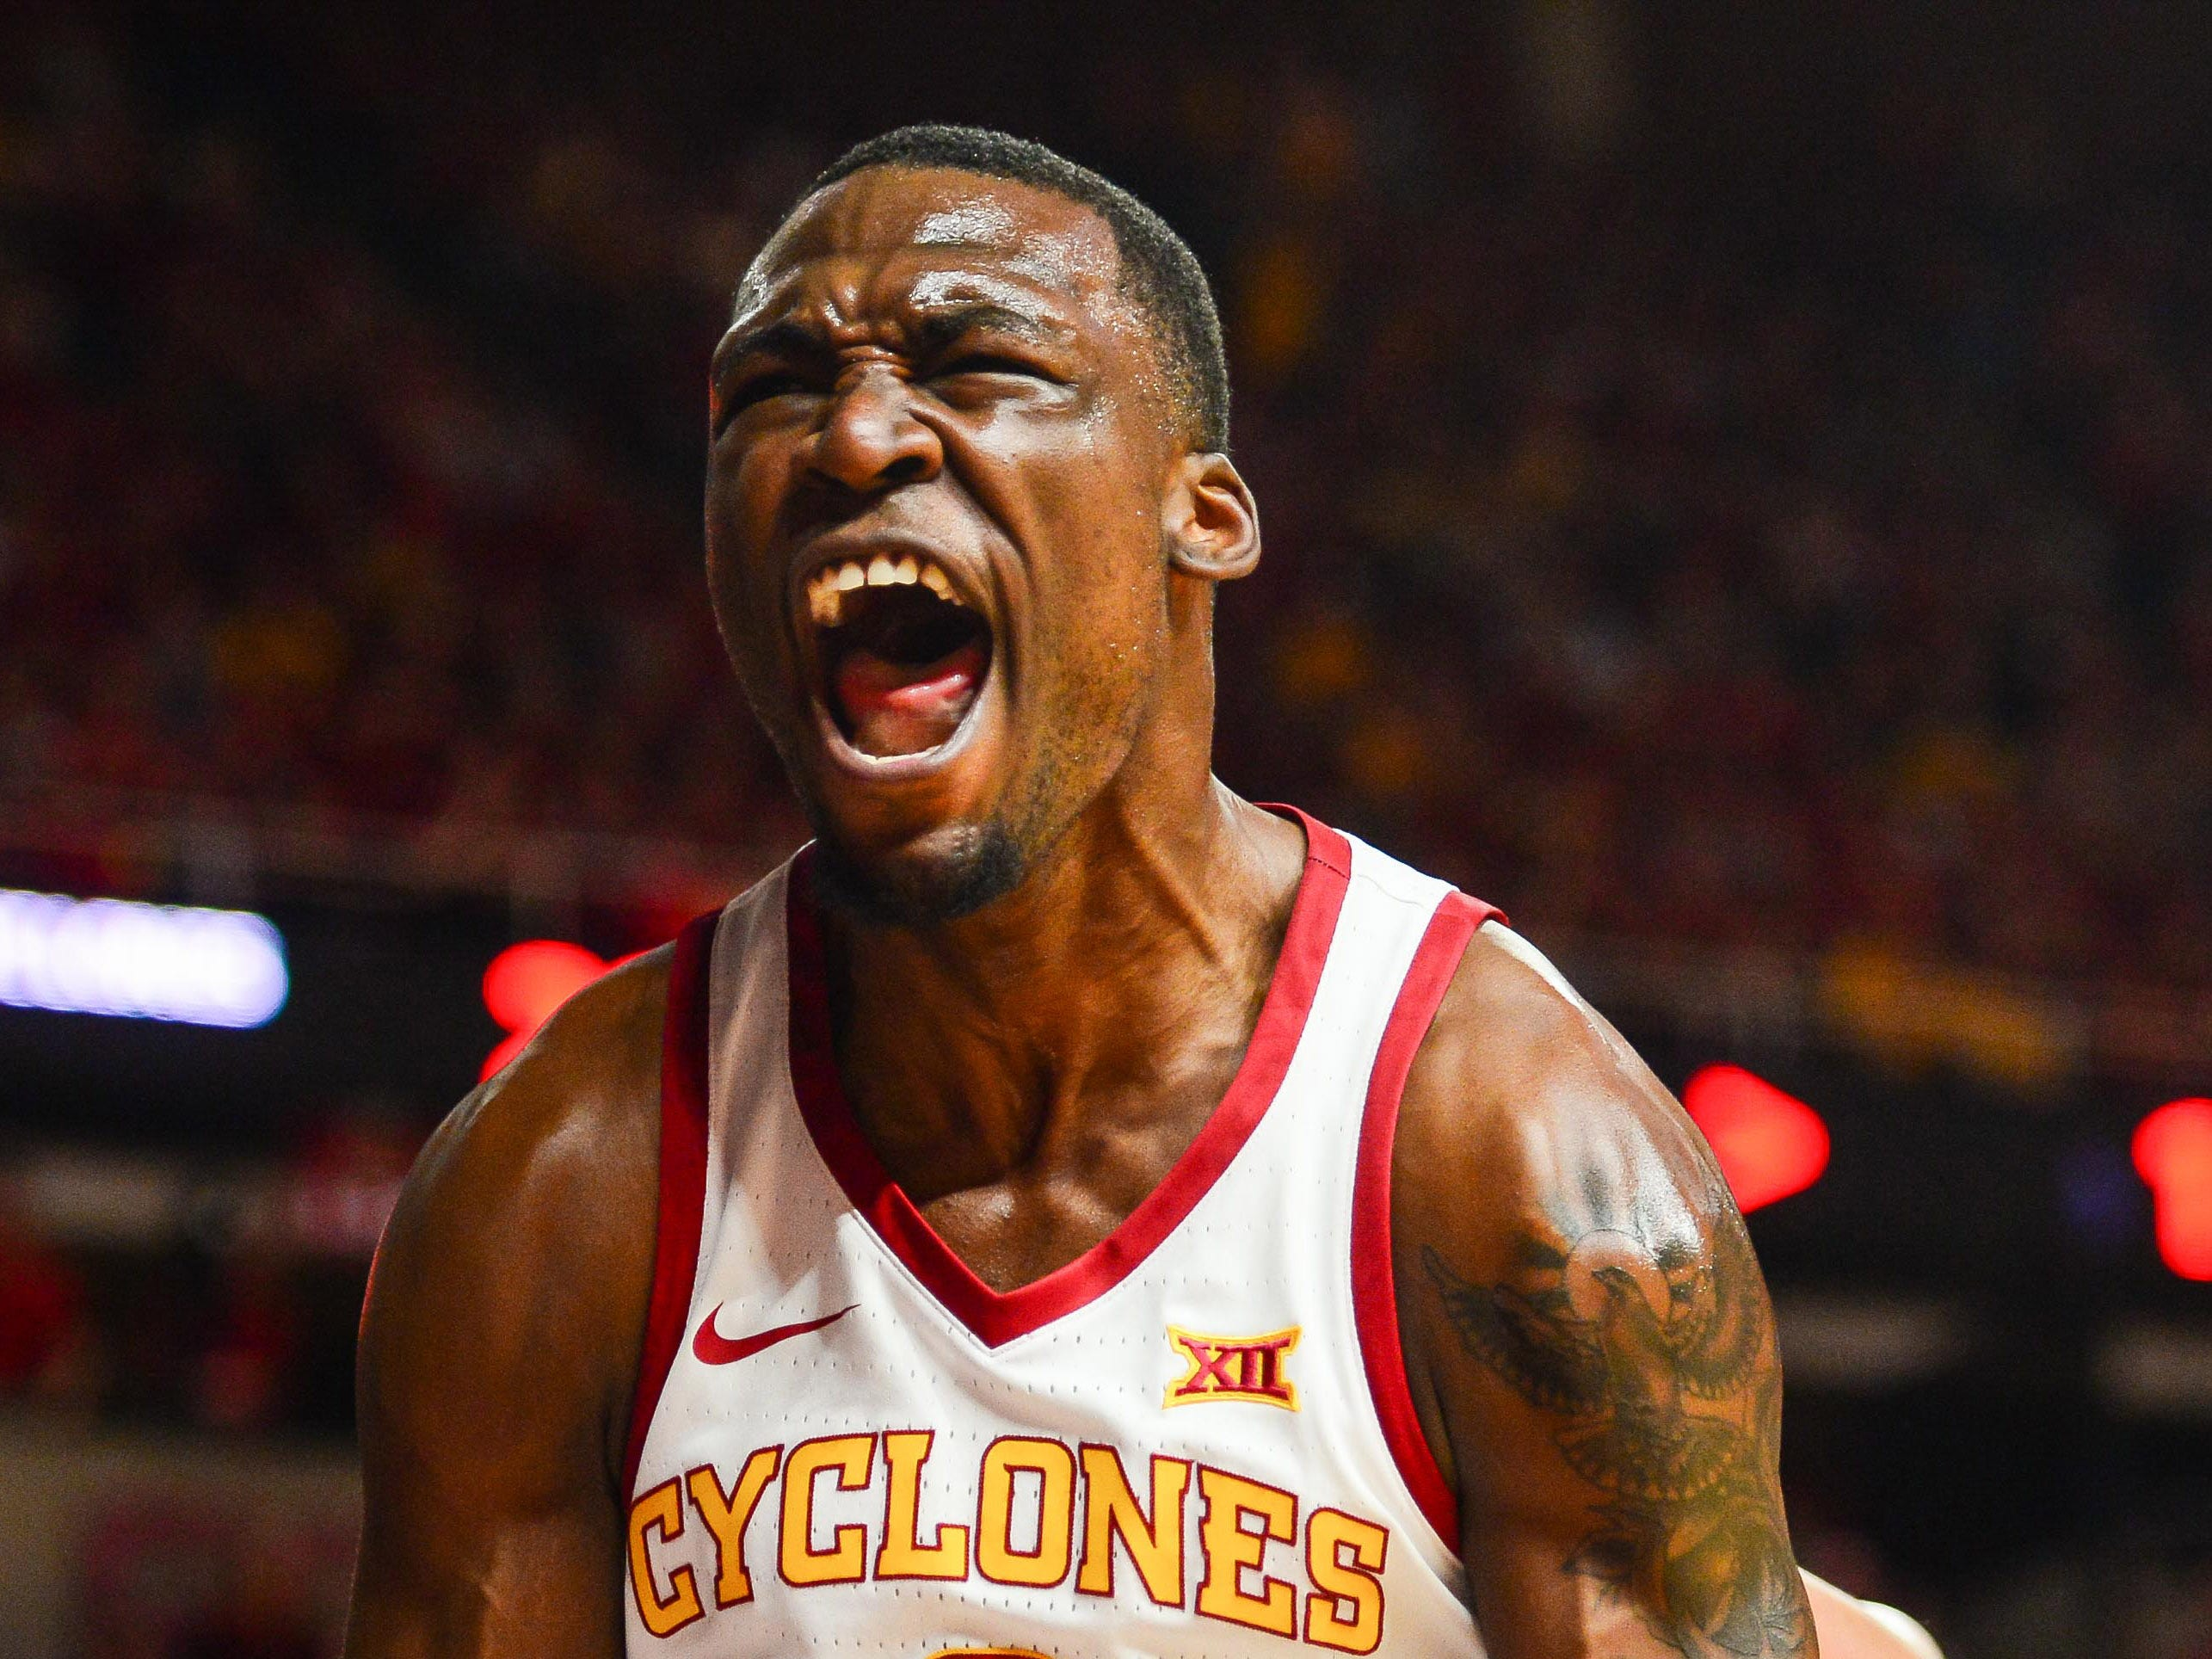 Iowa State Cyclones forward Cameron Lard (2) reacts during the first half against the Kansas Jayhawks at Hilton Coliseum.